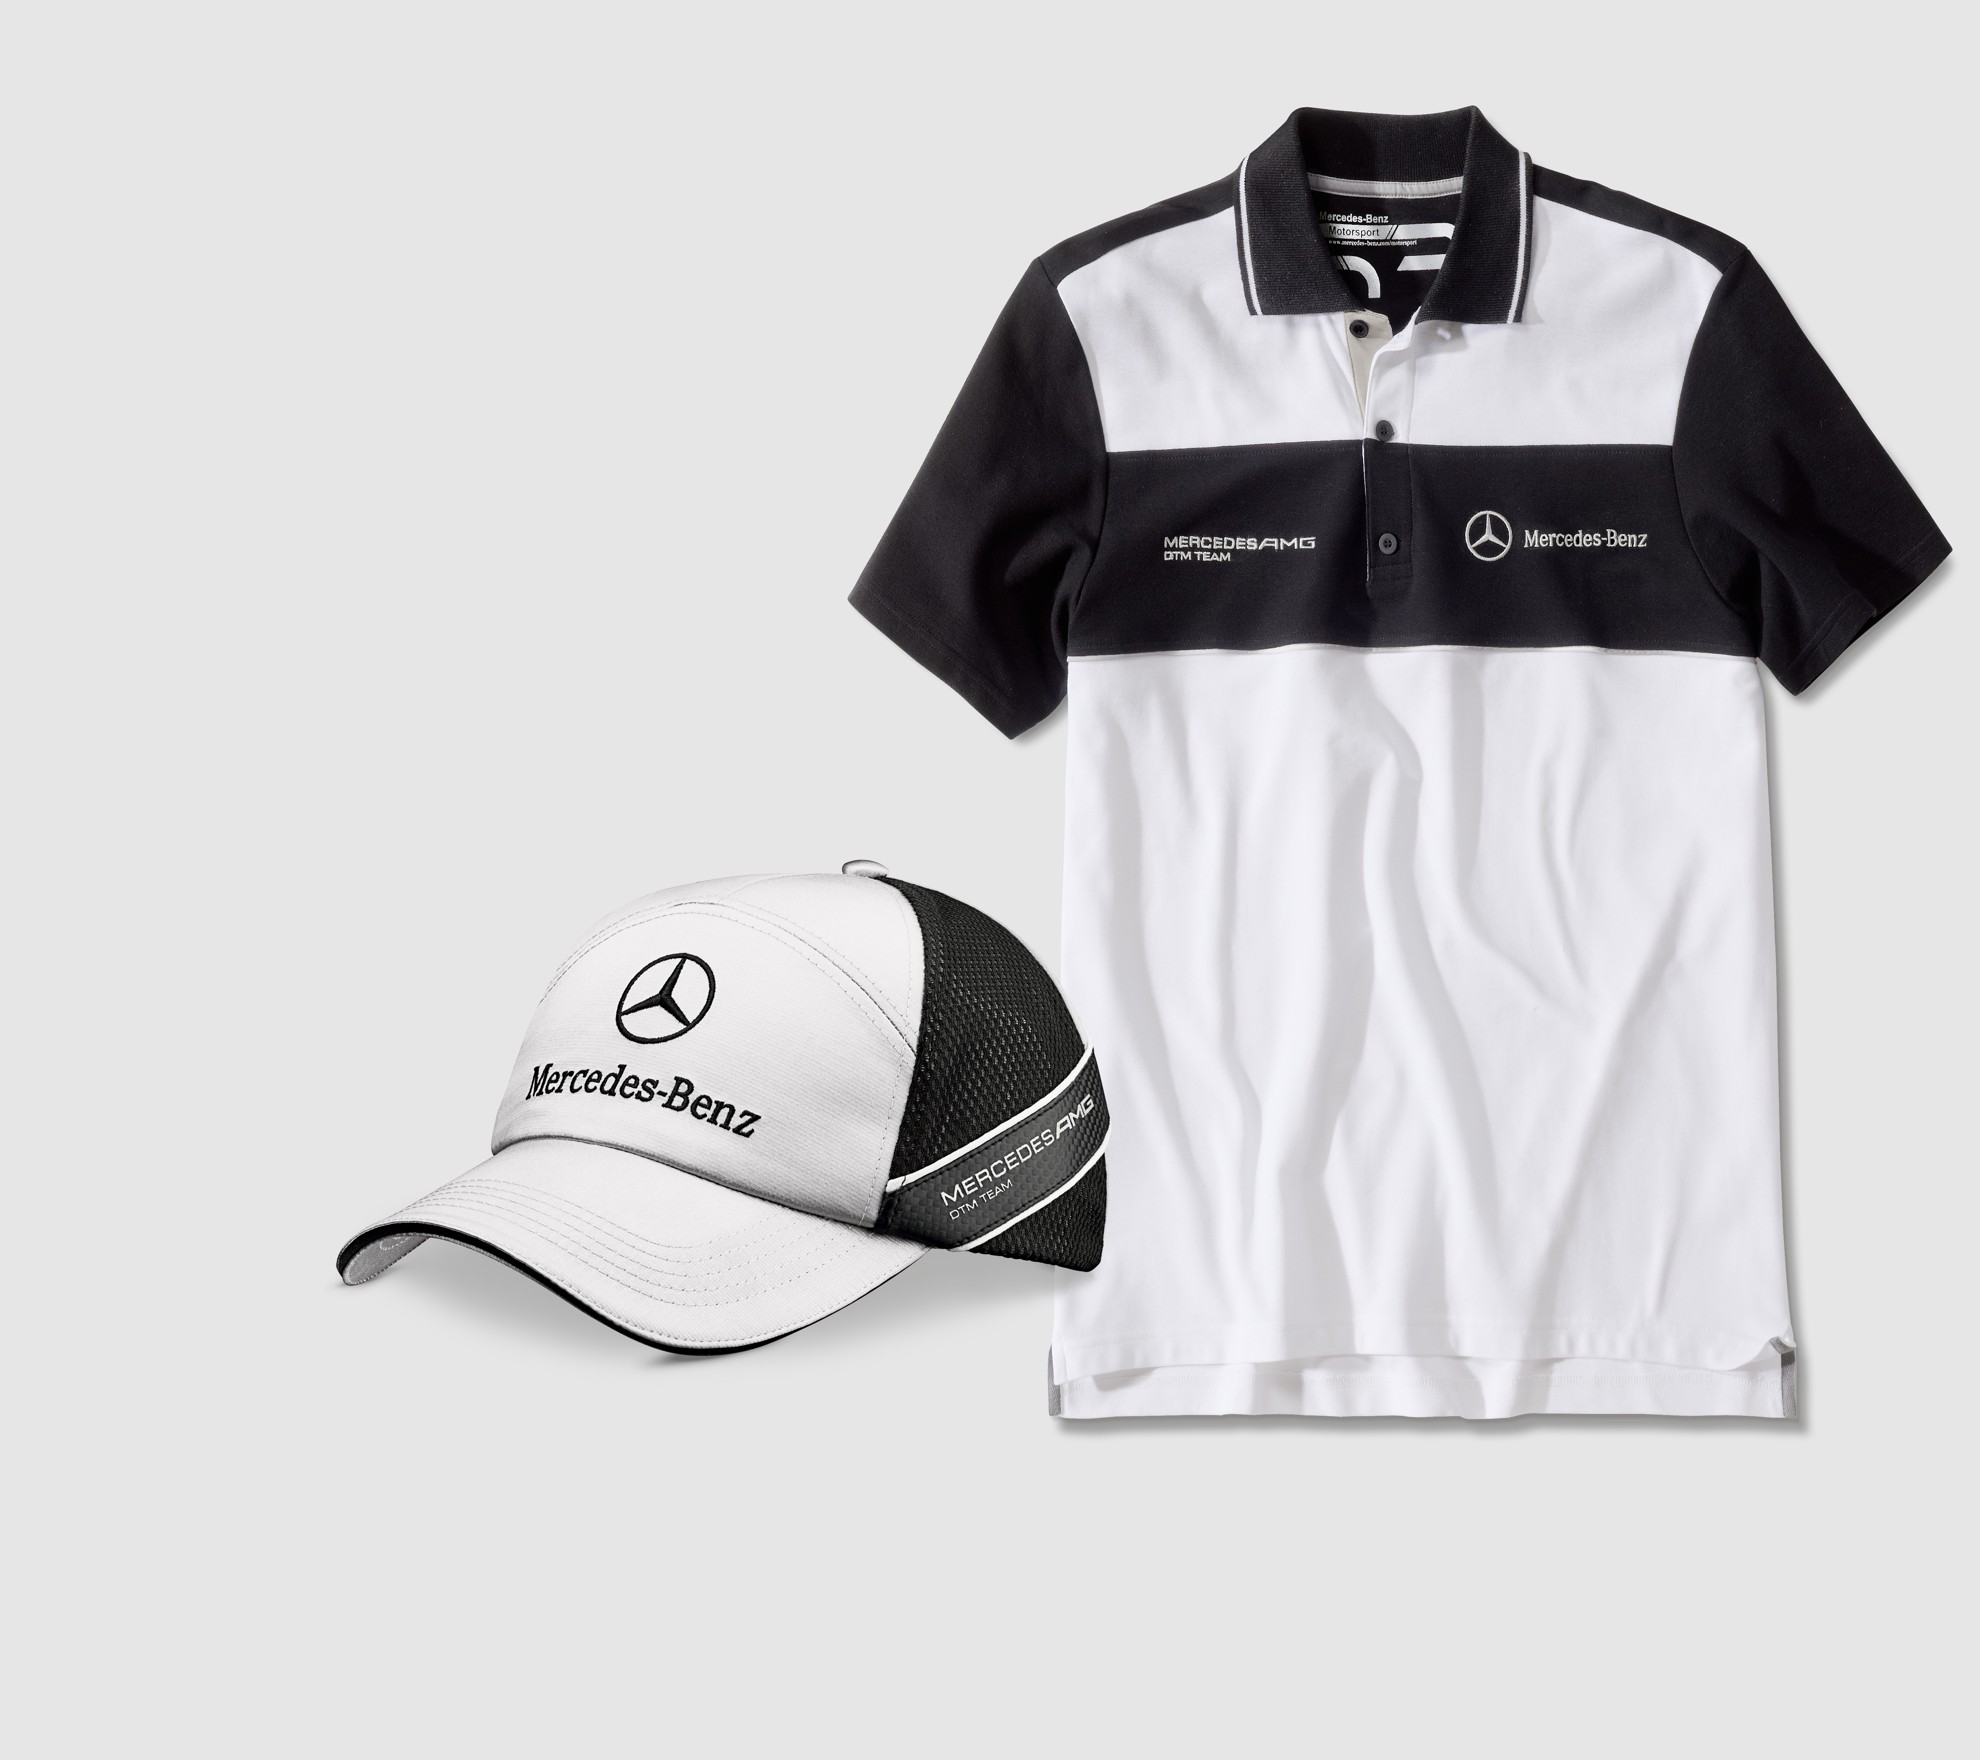 formula 1 season accessories by mercedes benz